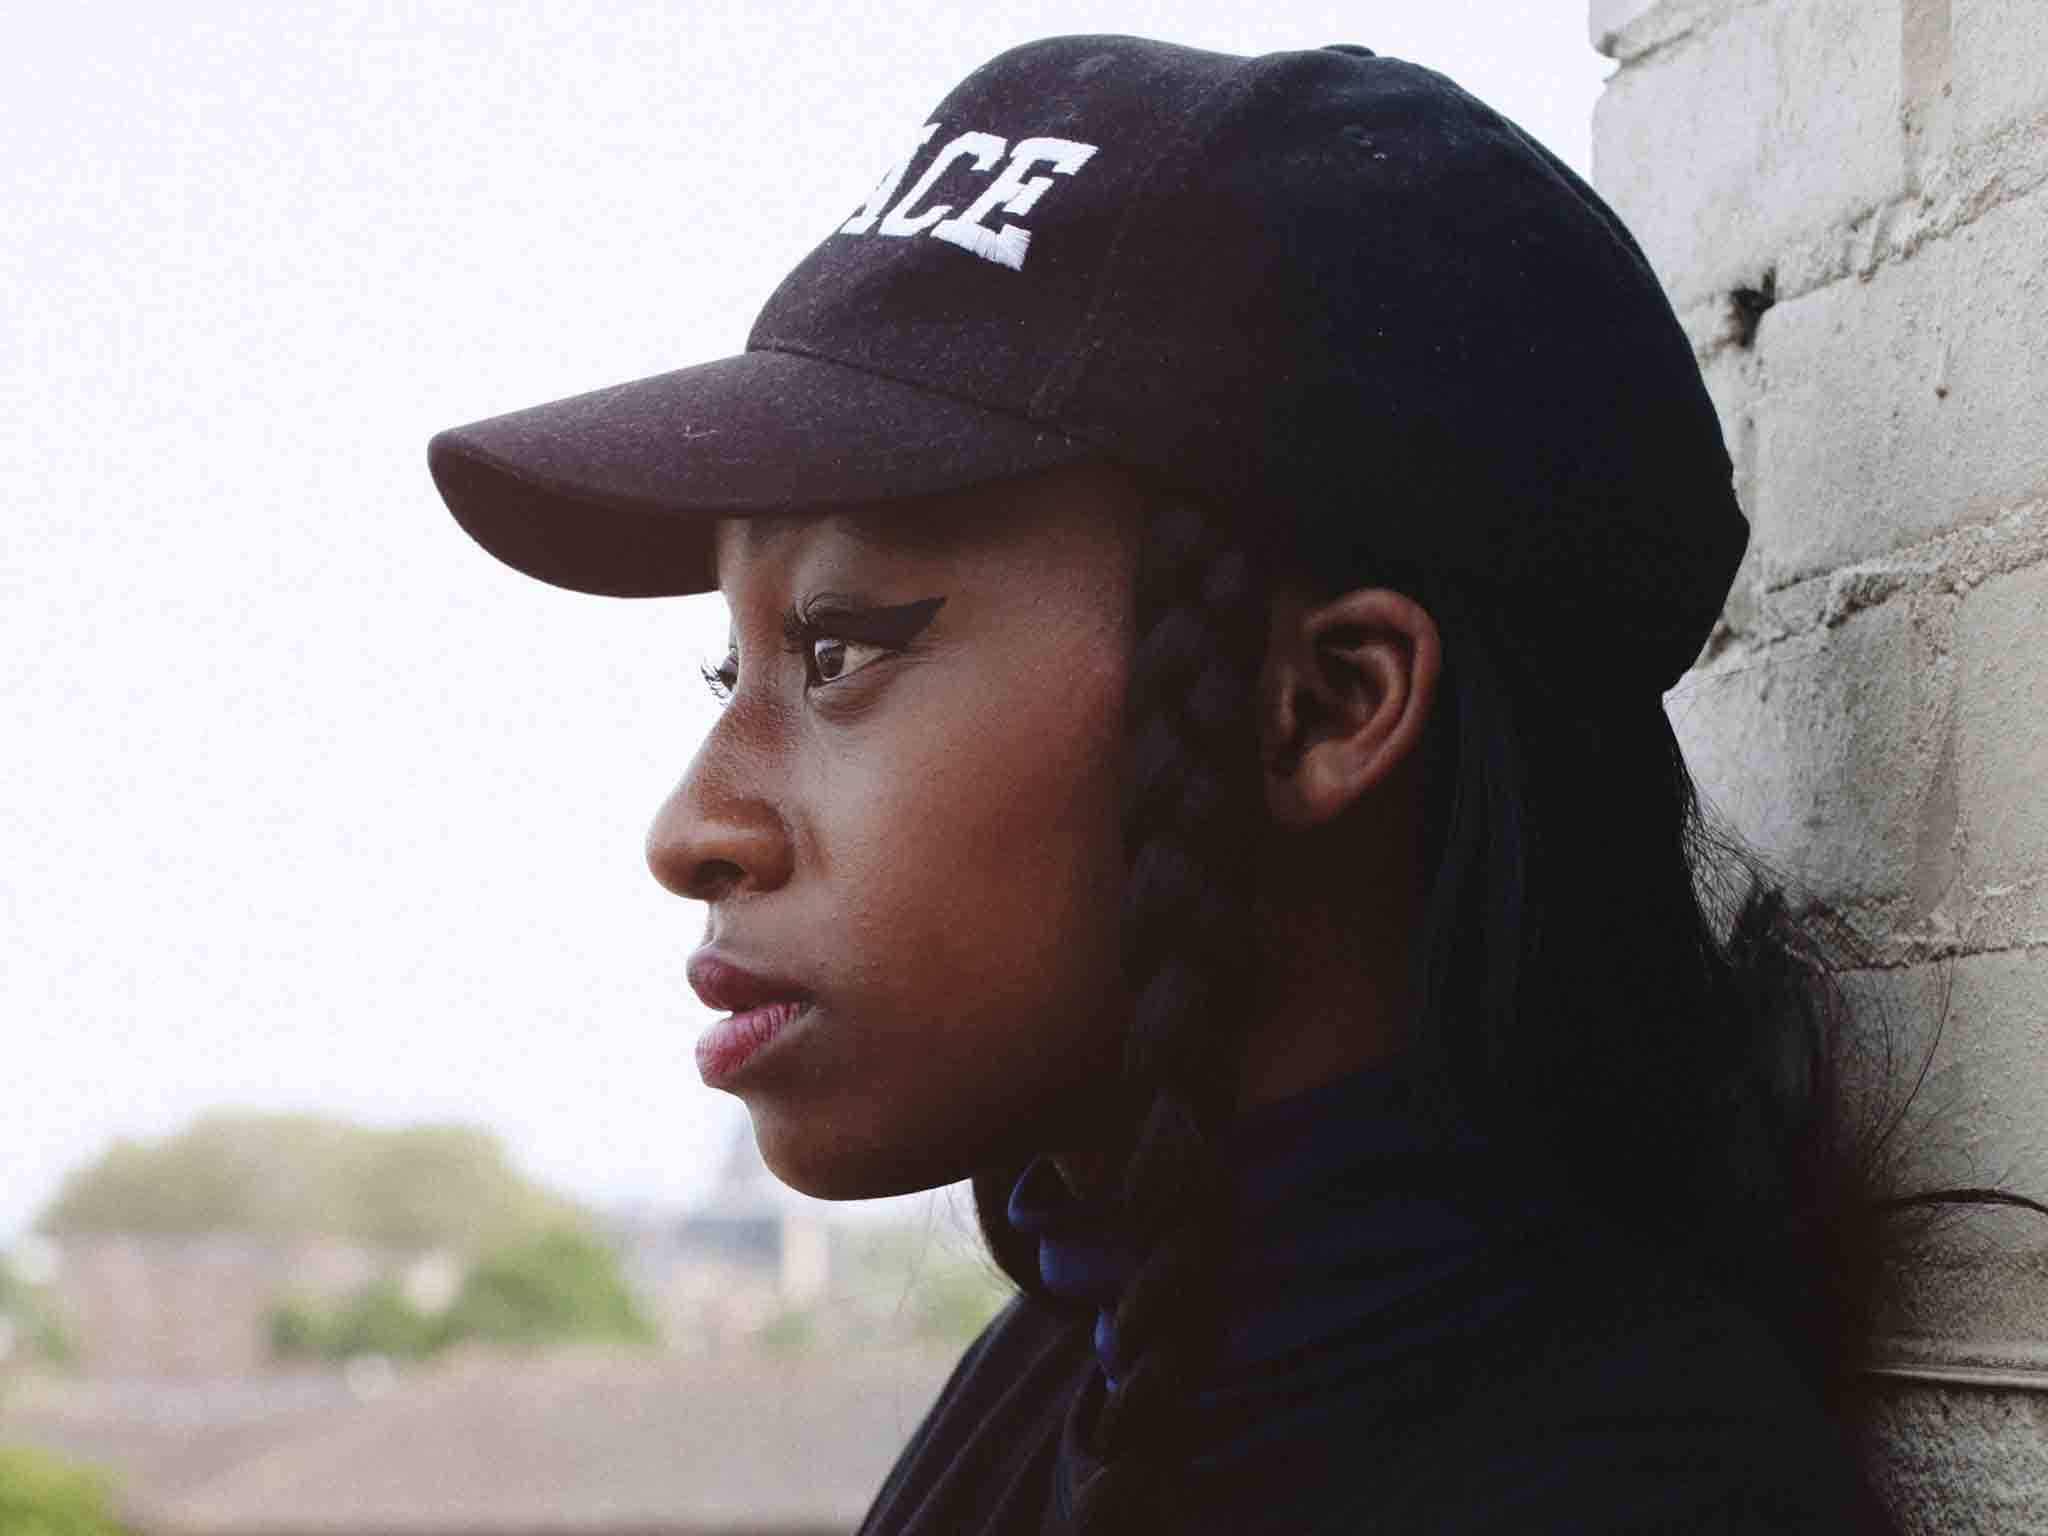 The 50 best albums of 2015 - Little Simz - 'A Curious Tales of Trials + Persons'